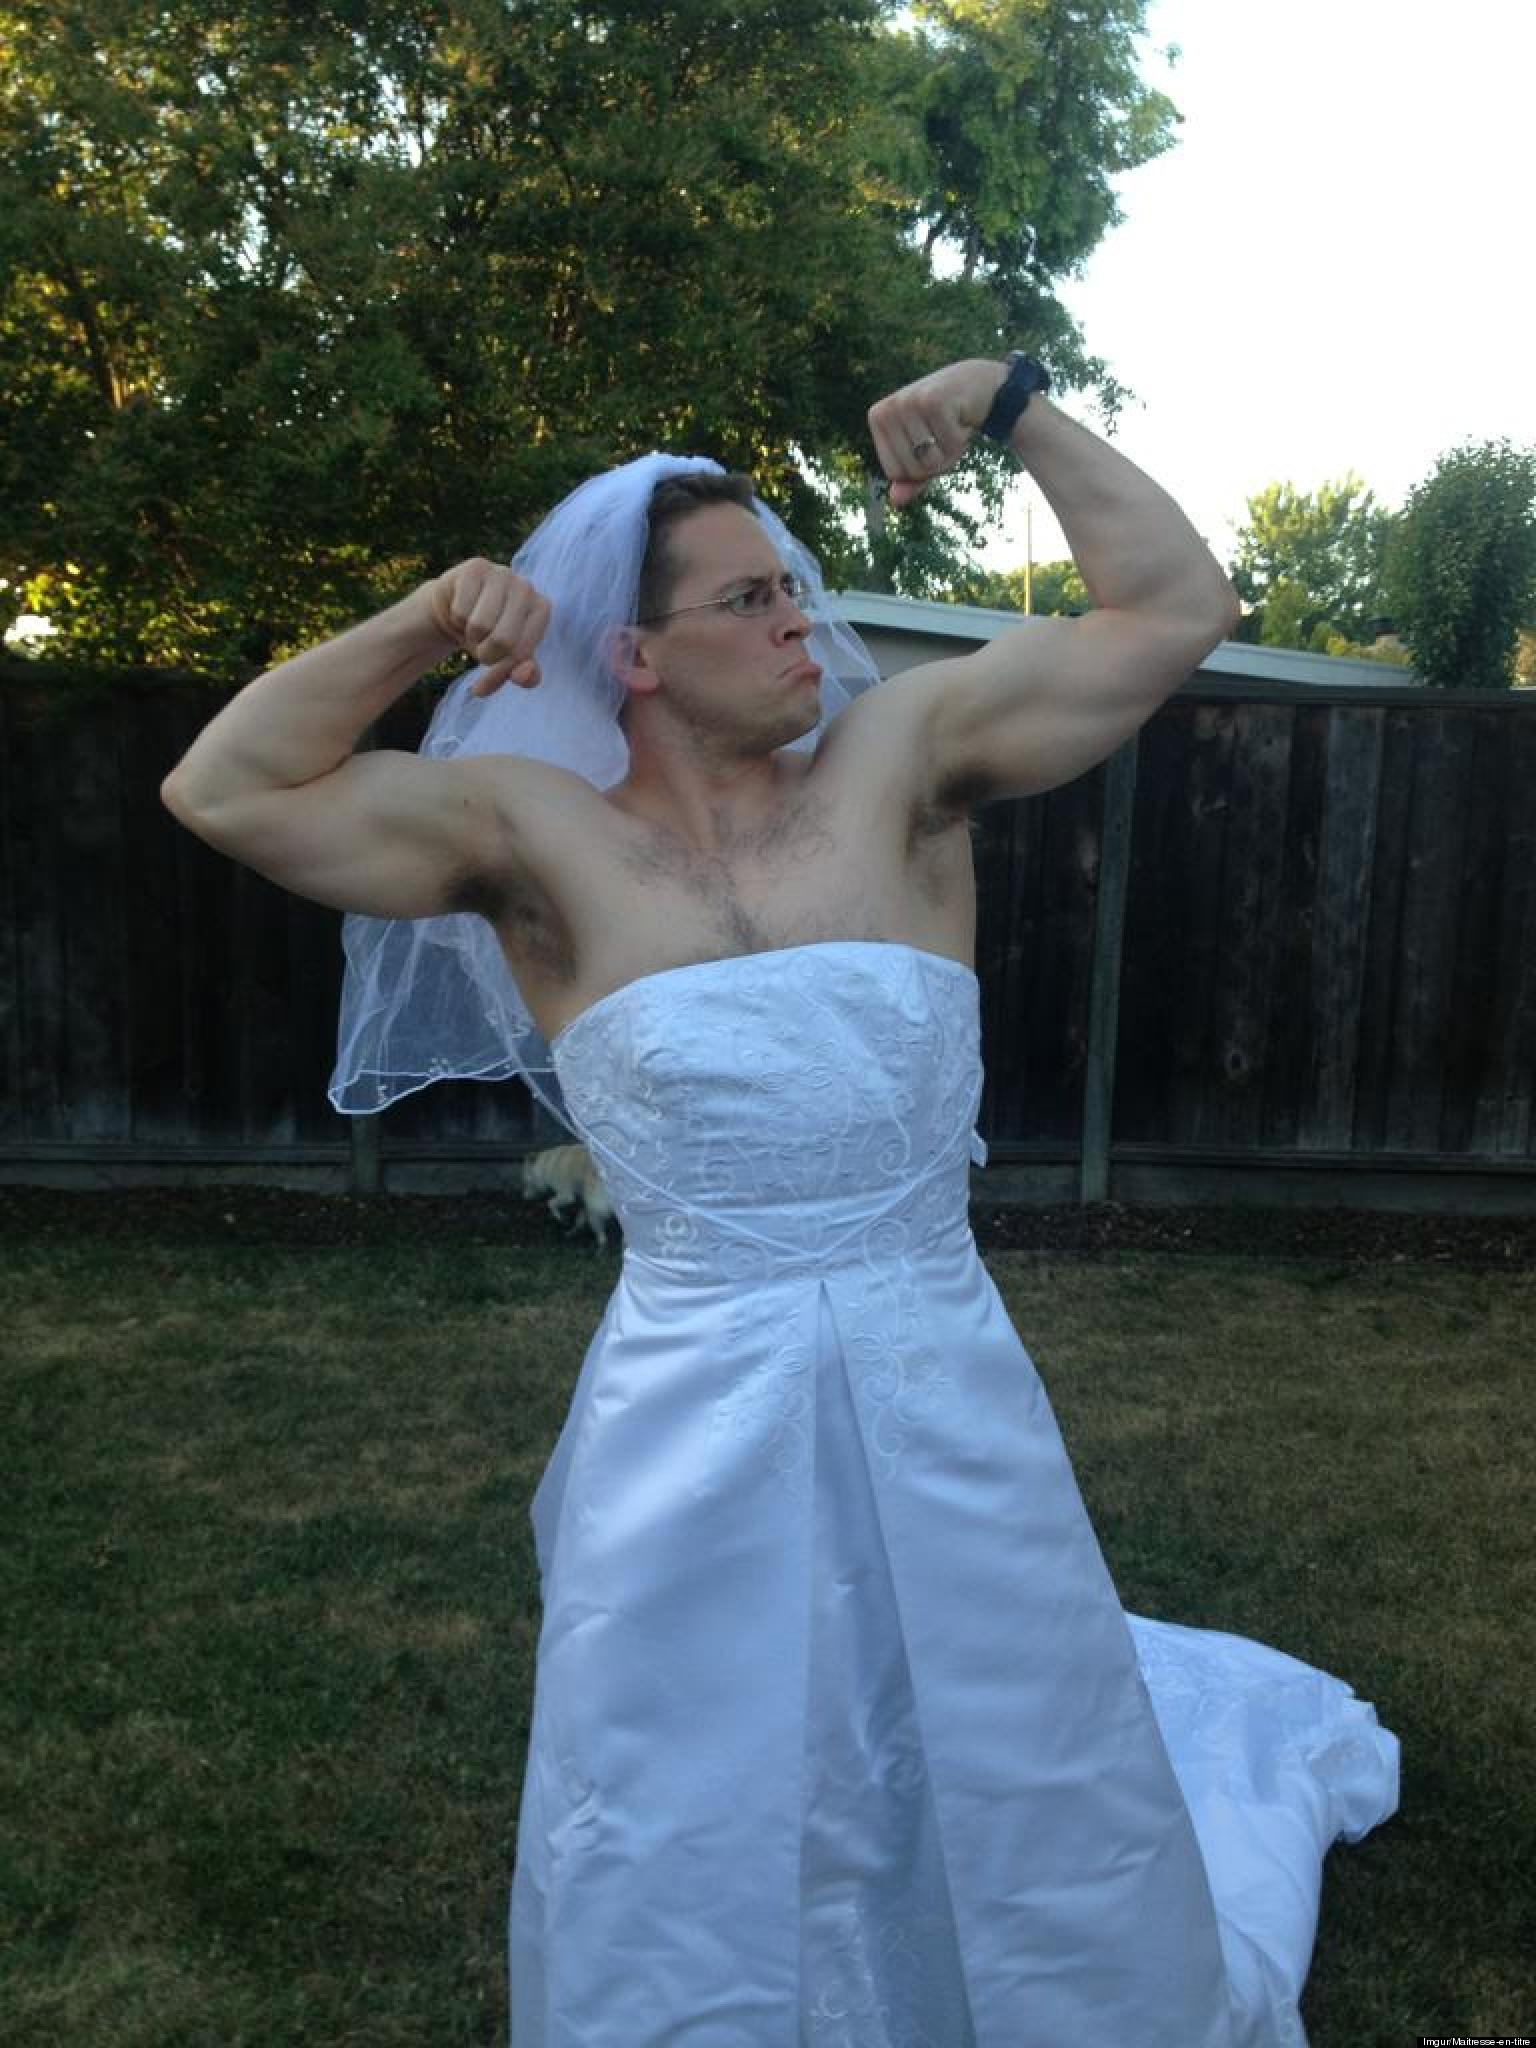 Funny Divorce Why This Man Is Wearing A Wedding Dress